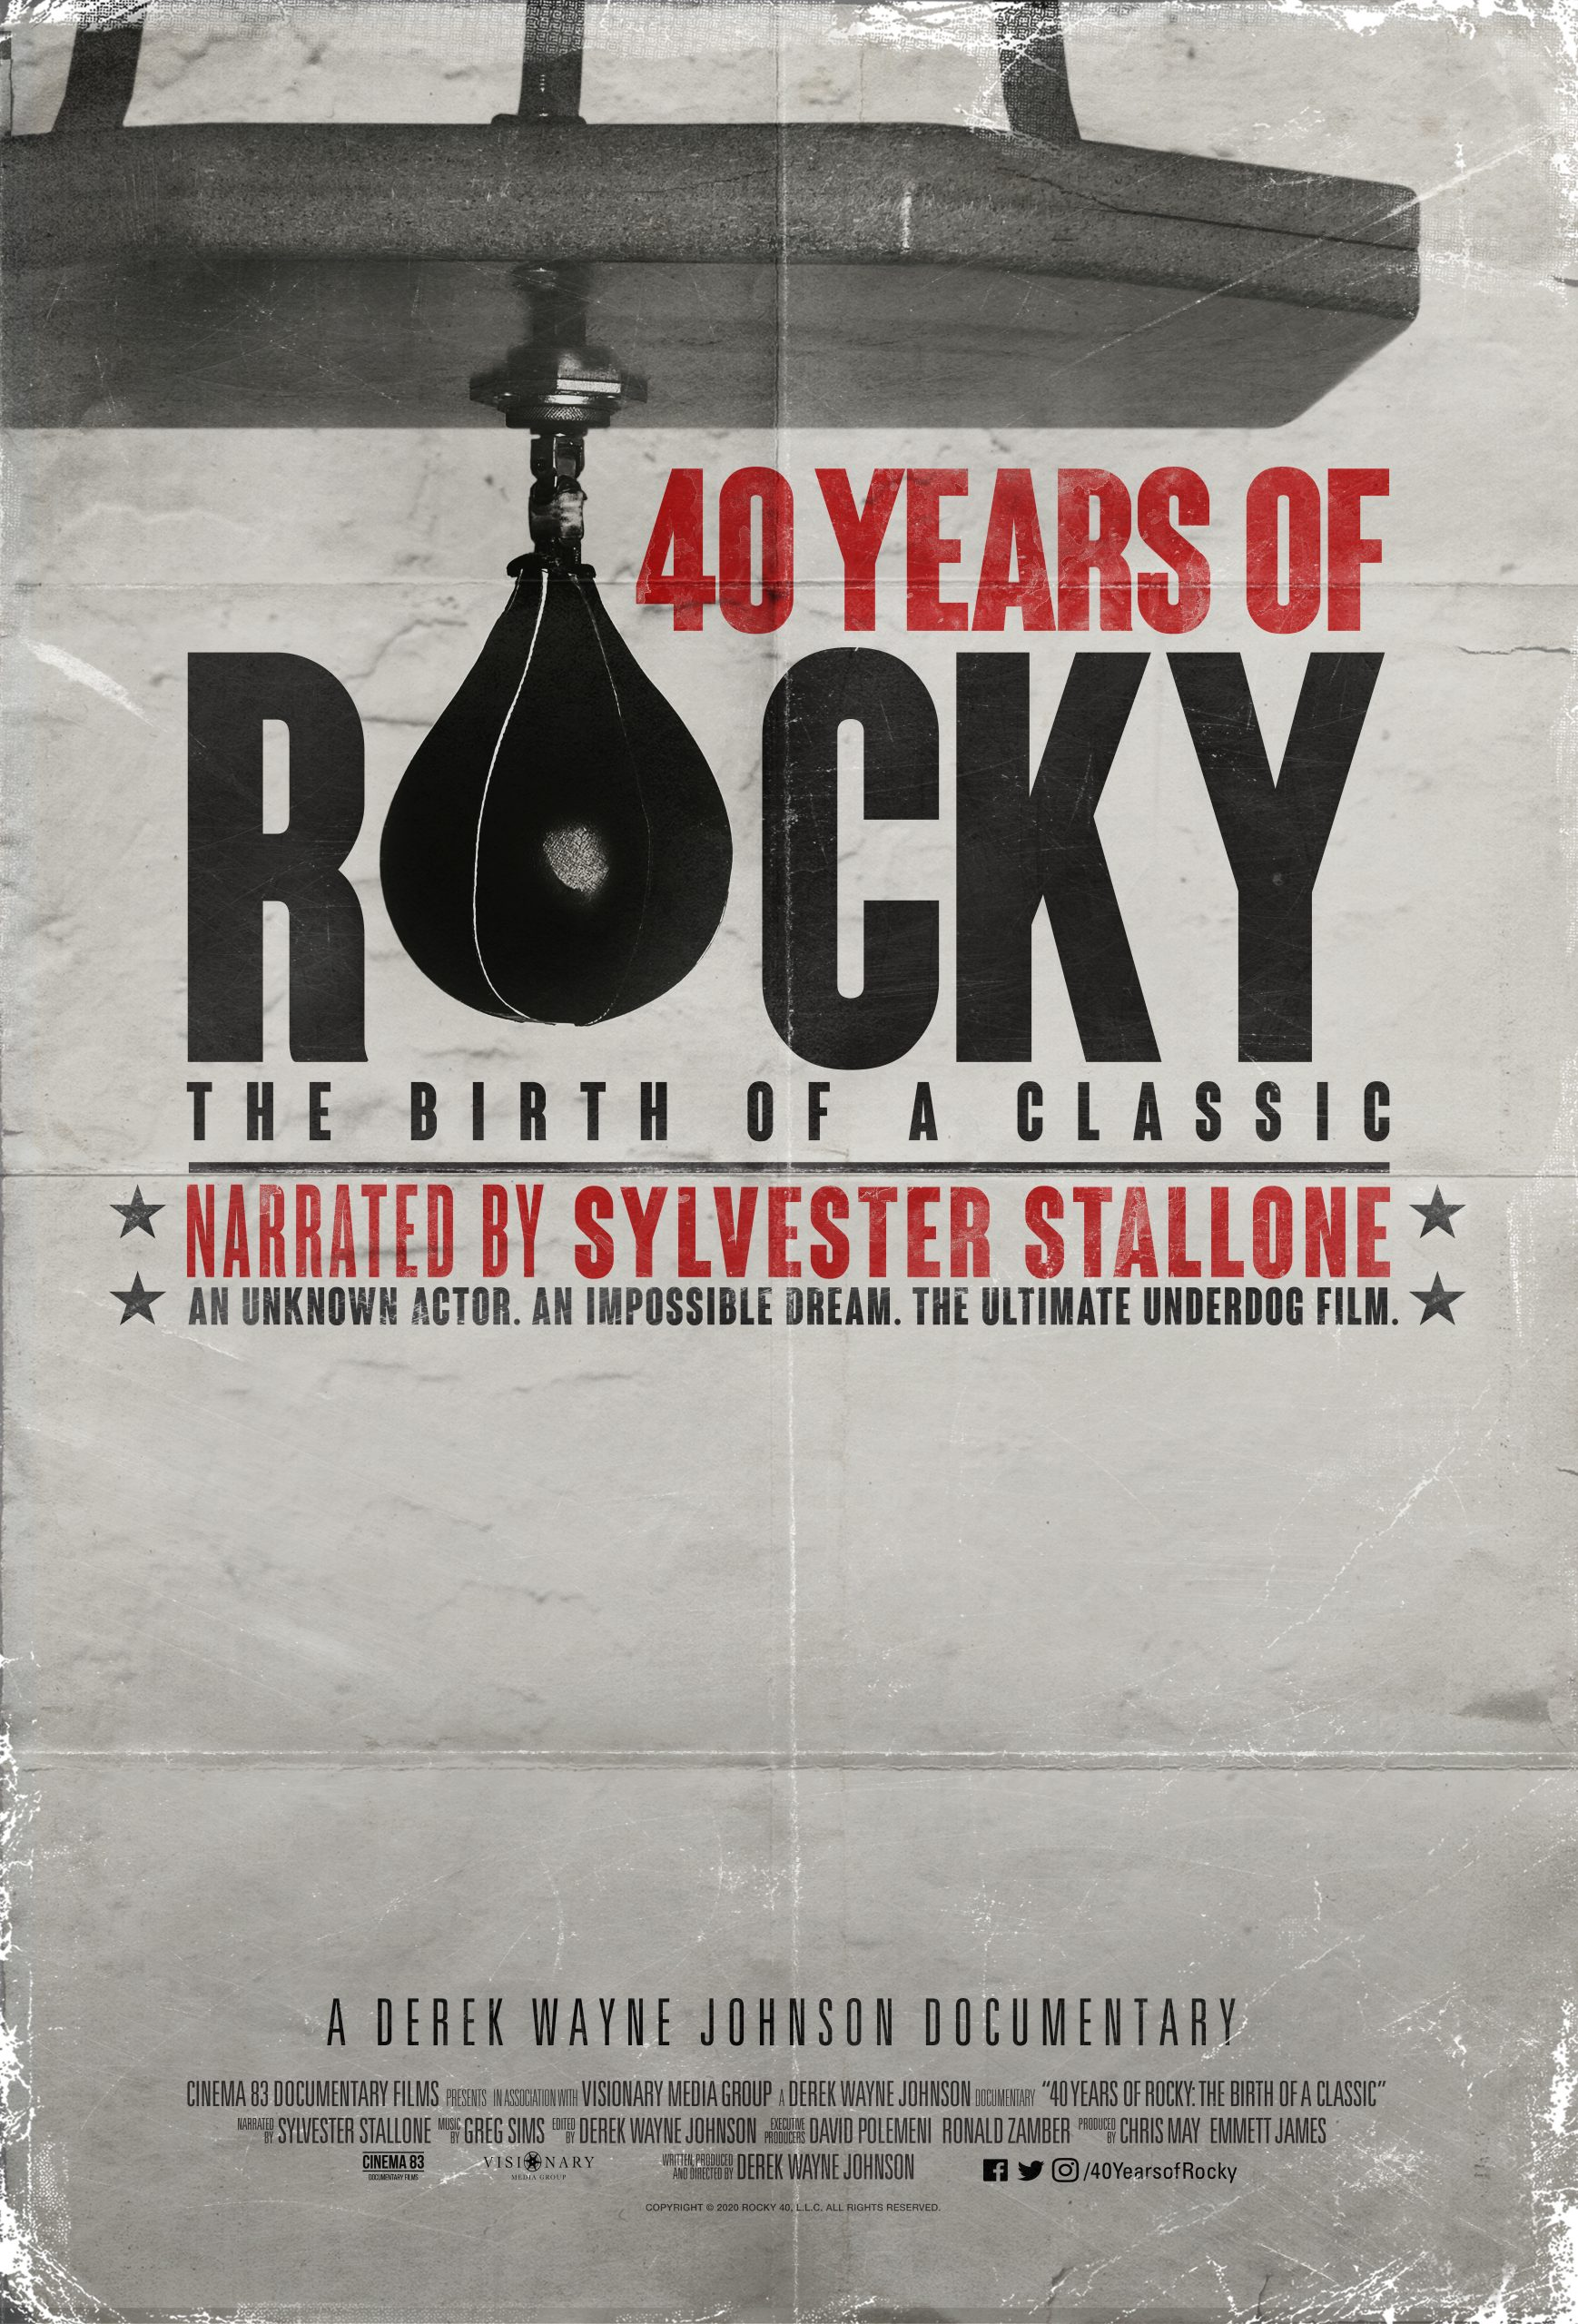 40 Years of Rocky: The Birth of a Classic 2020 فيلم مترجم